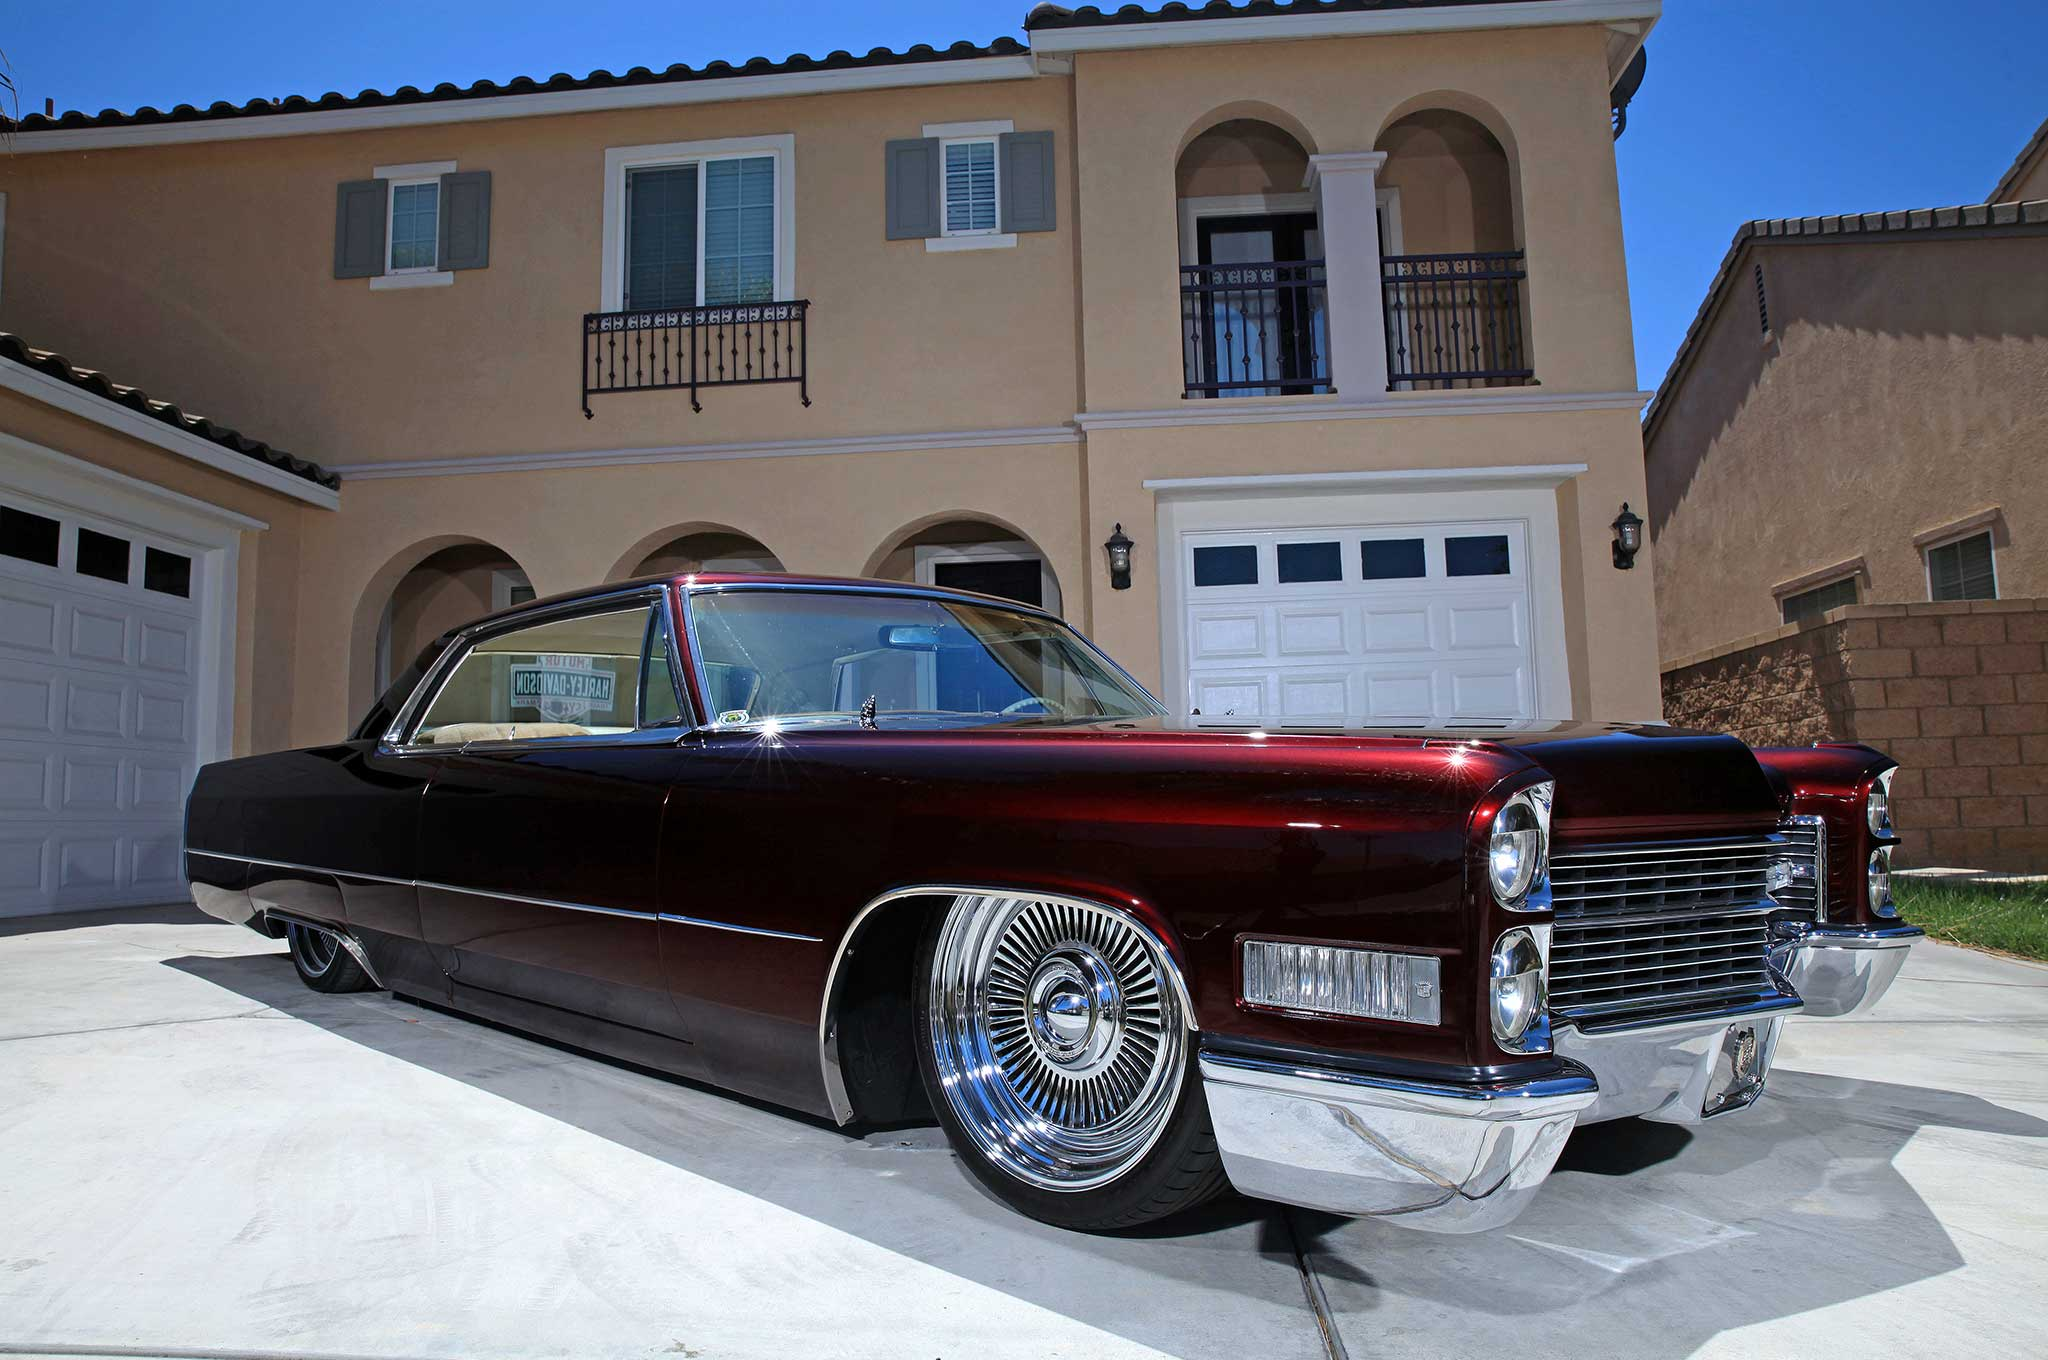 Riding a Classic Cadillac Coupe to Spend Time with His Kids